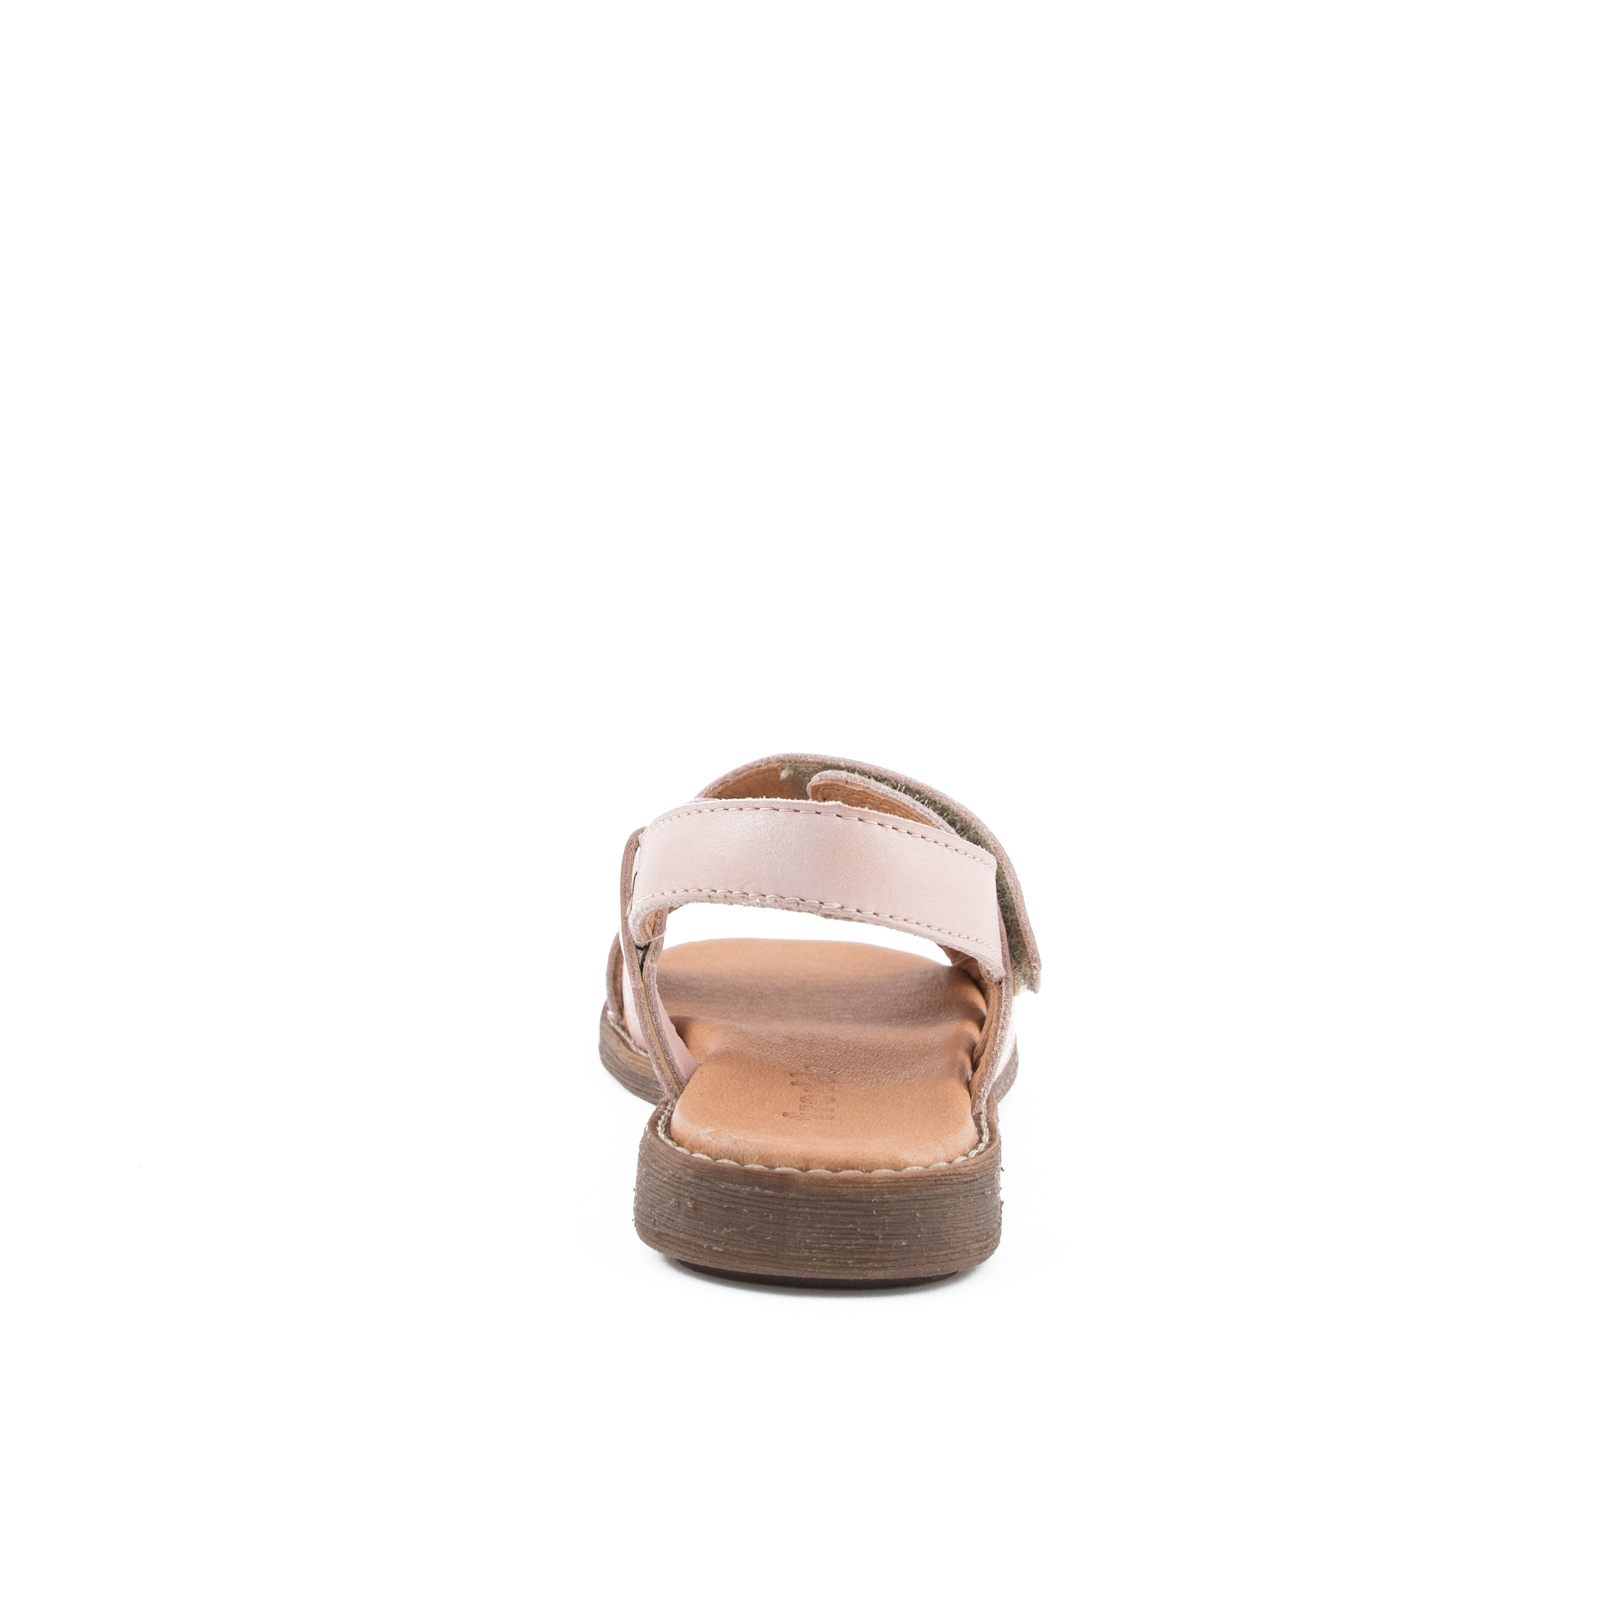 FRODDO Girls Sandals Nude G3150133-4 NOW £35_ Last Pair